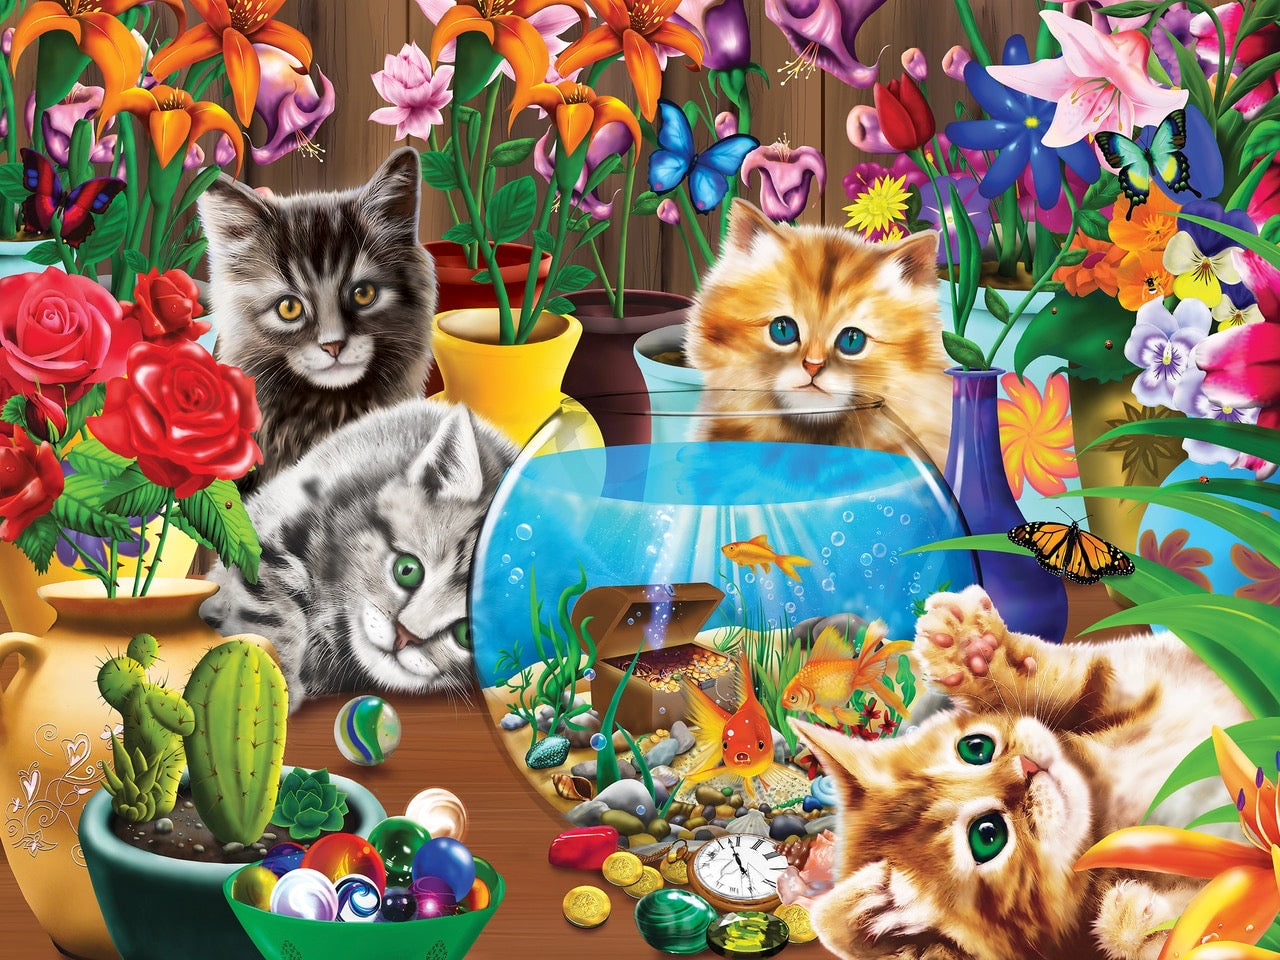 Marvelous Kittens 400 Piece Family Puzzle